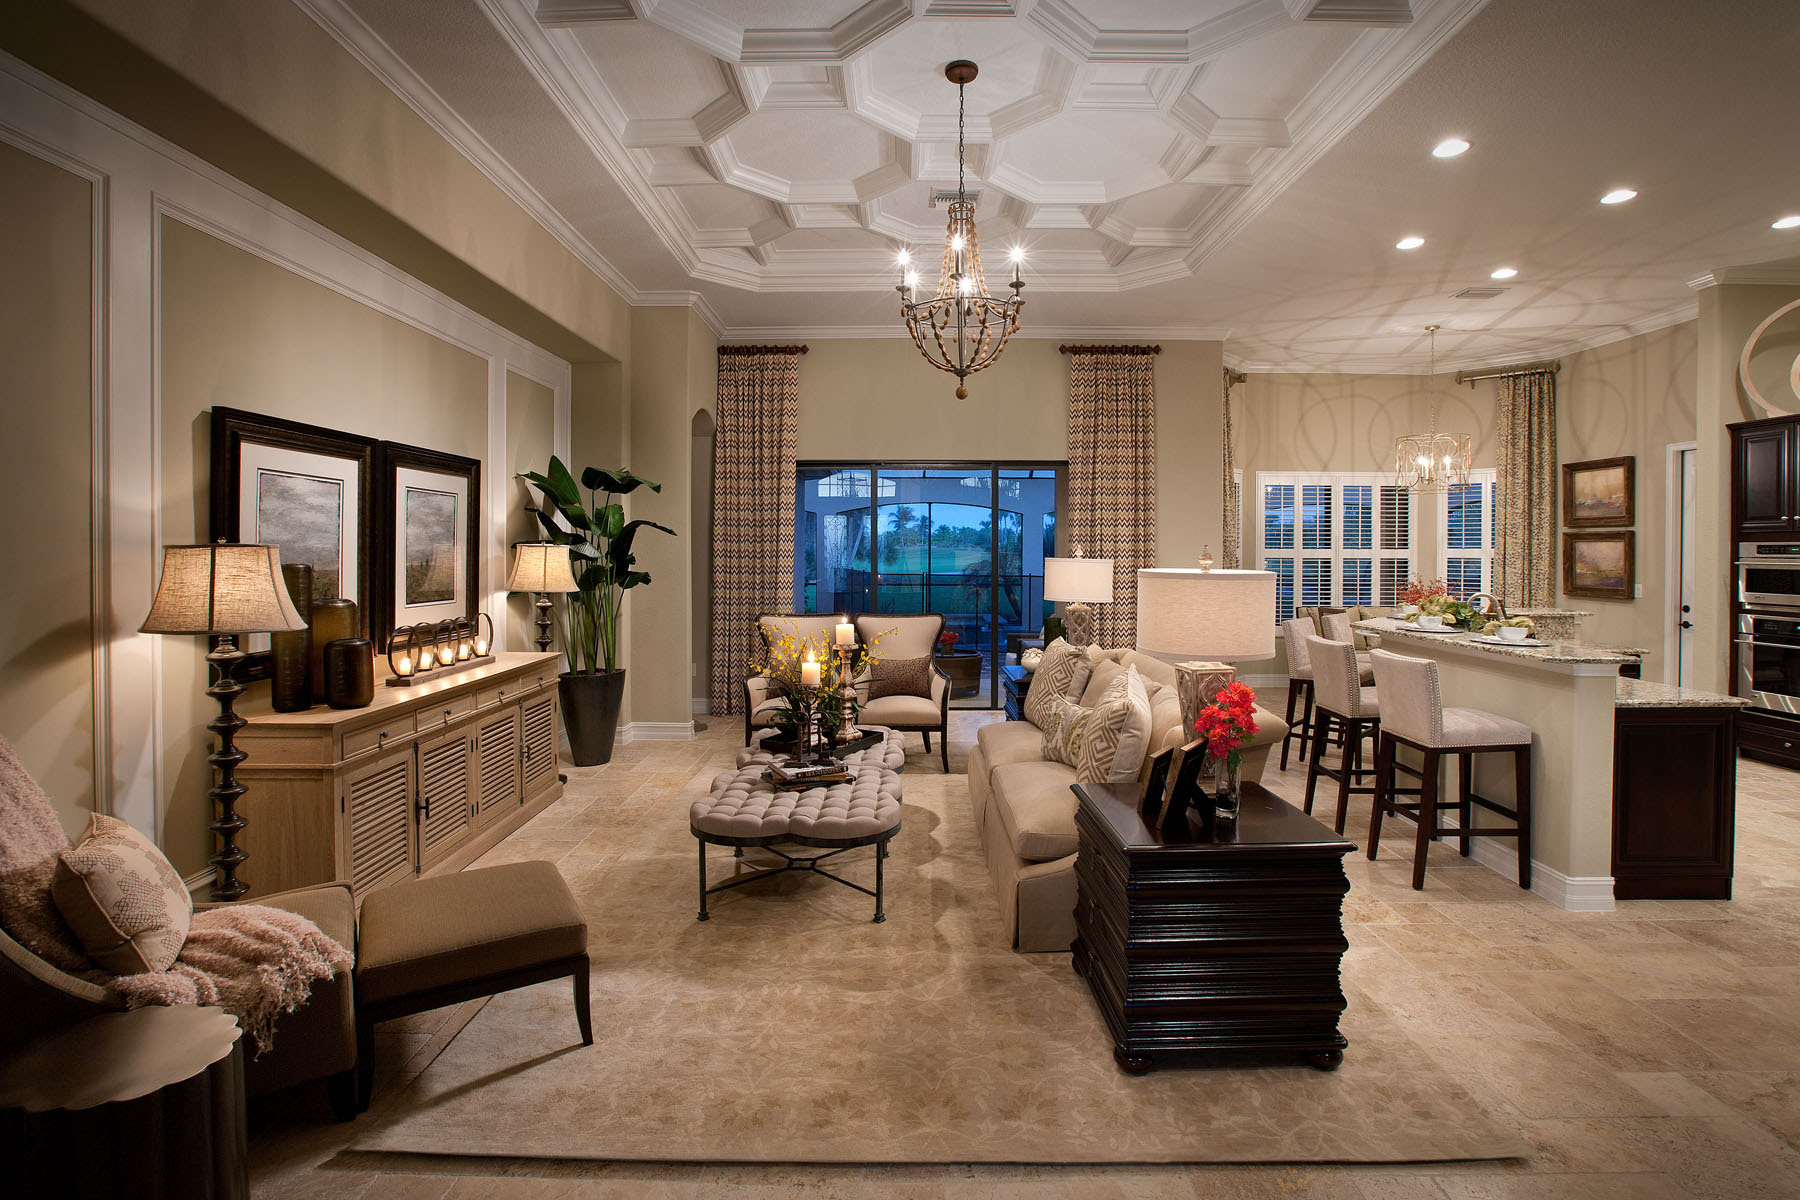 Bougainvillea Luxury Model Home Completed at Runaway Bay ...